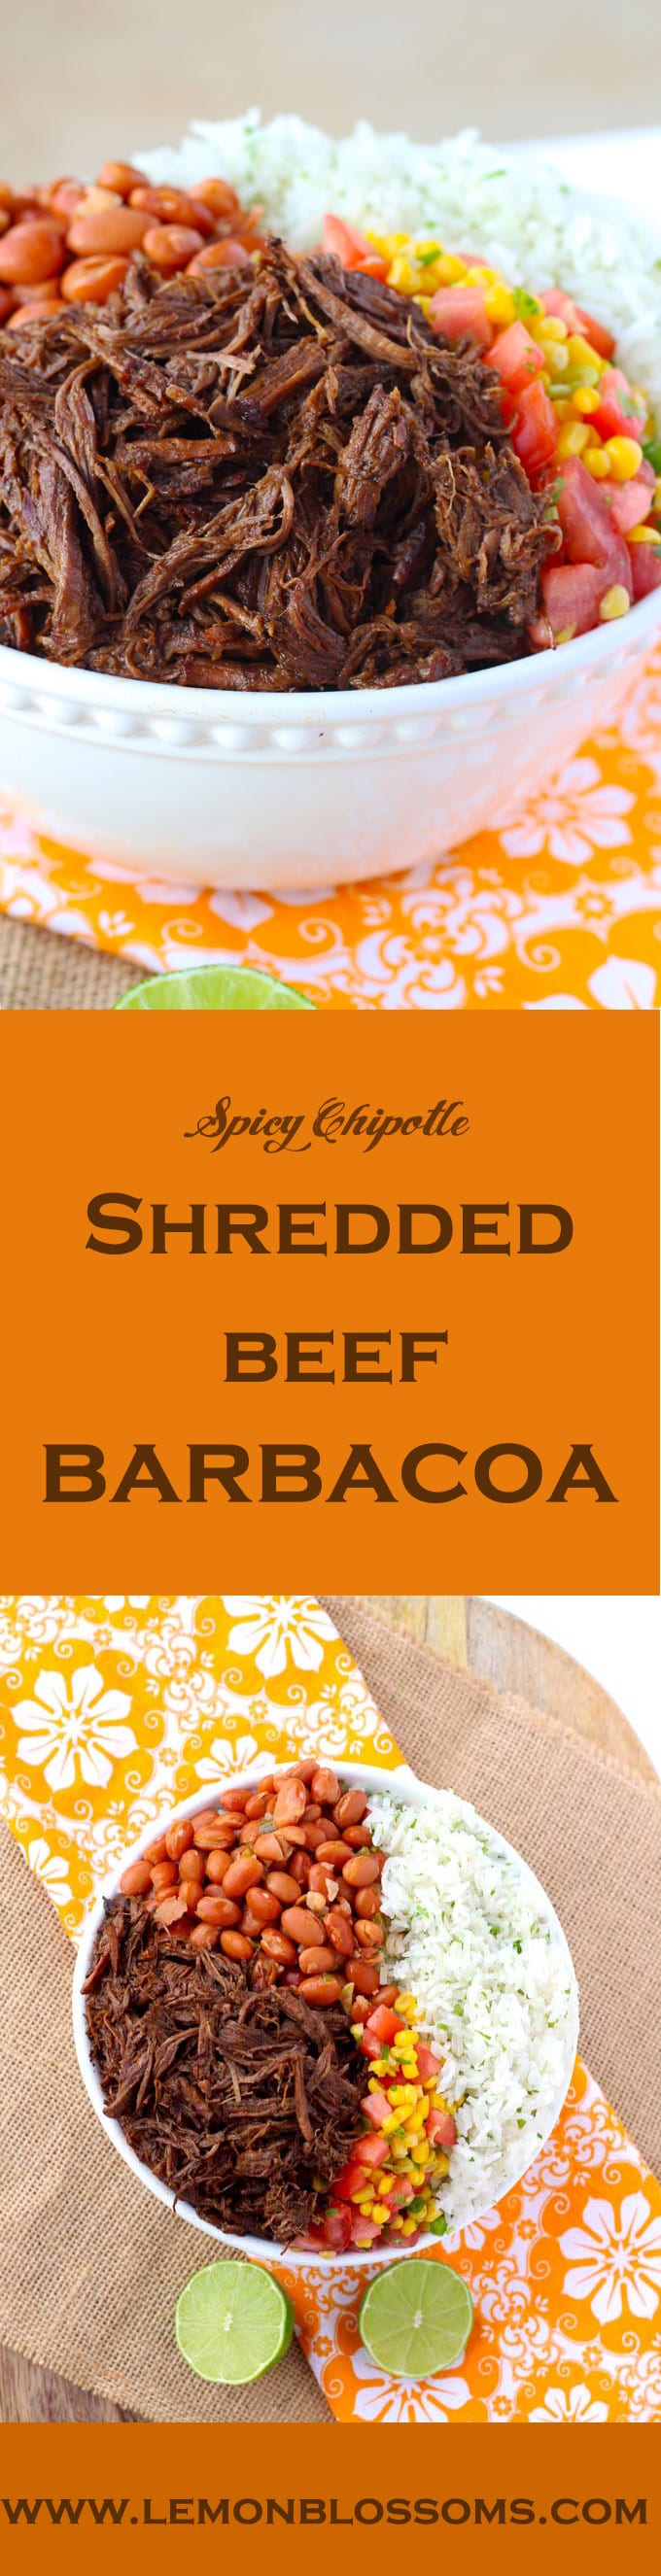 Slow braised until tender, spicy chipotle shredded beef barbacoa is delicious and perfect for burritos, burrito bowls and Tex-Mex salads